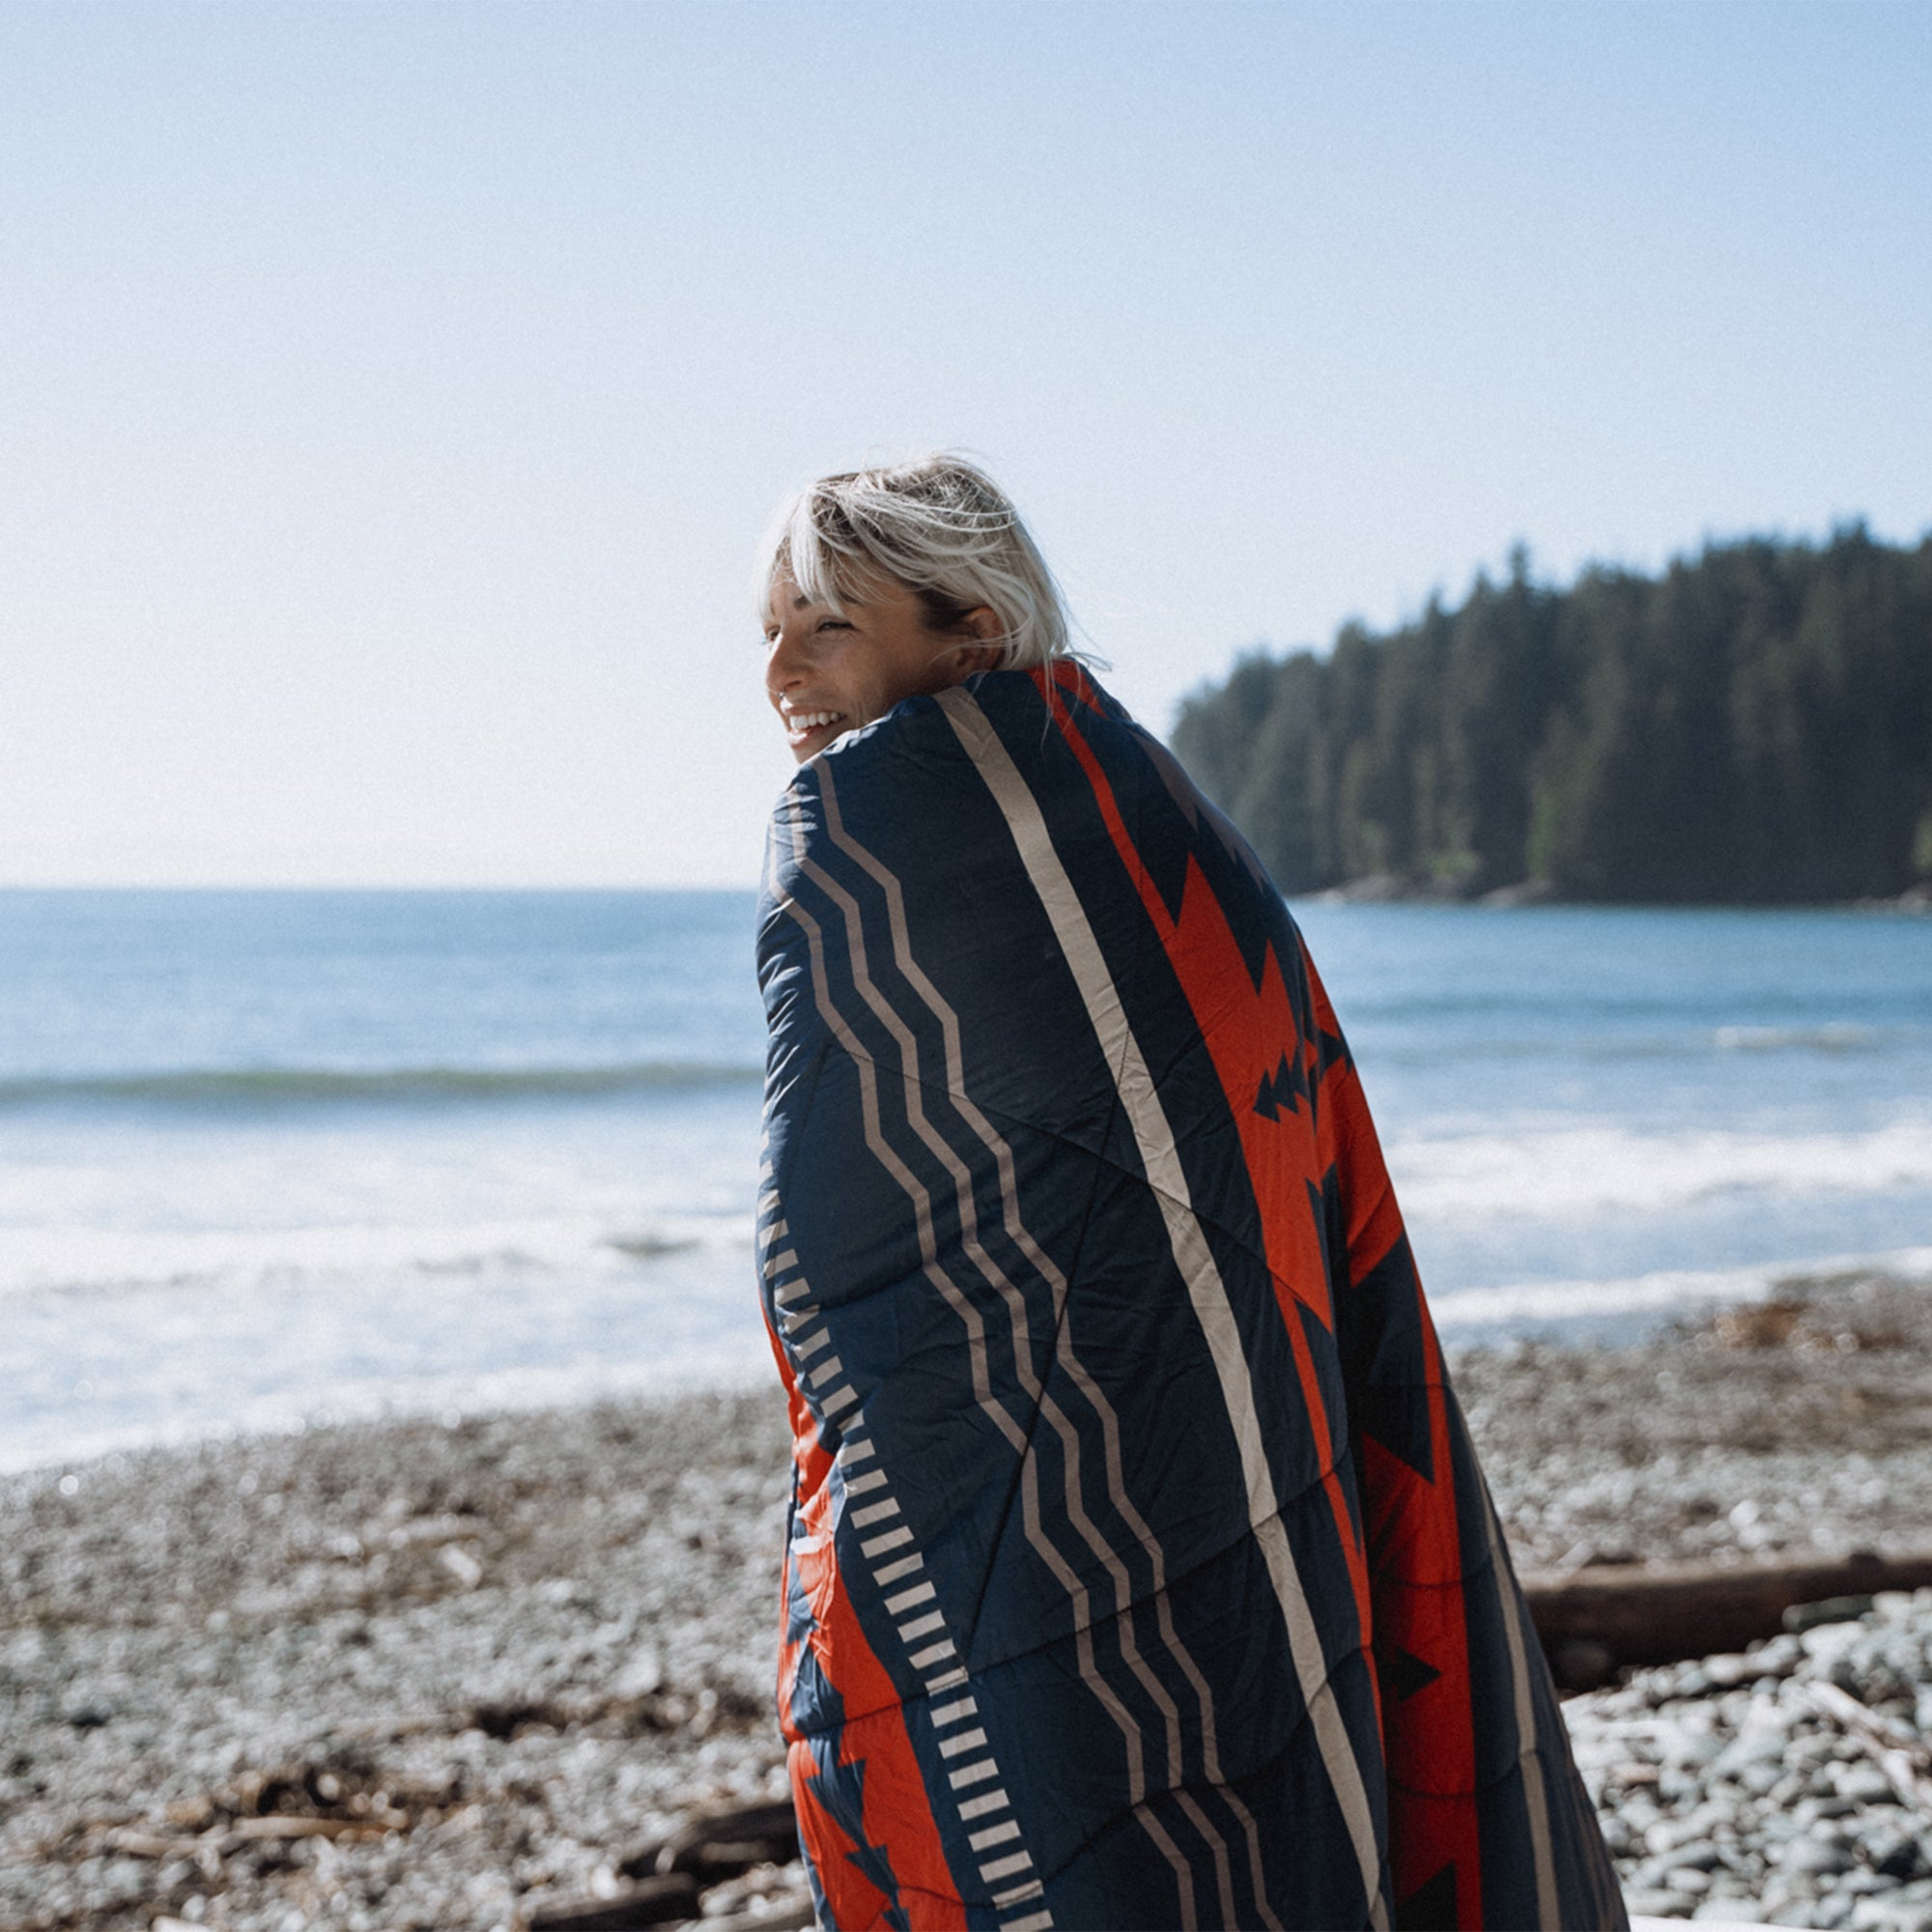 Nomadic 2 Person Sherpa Blanket - Navy & Red image 4